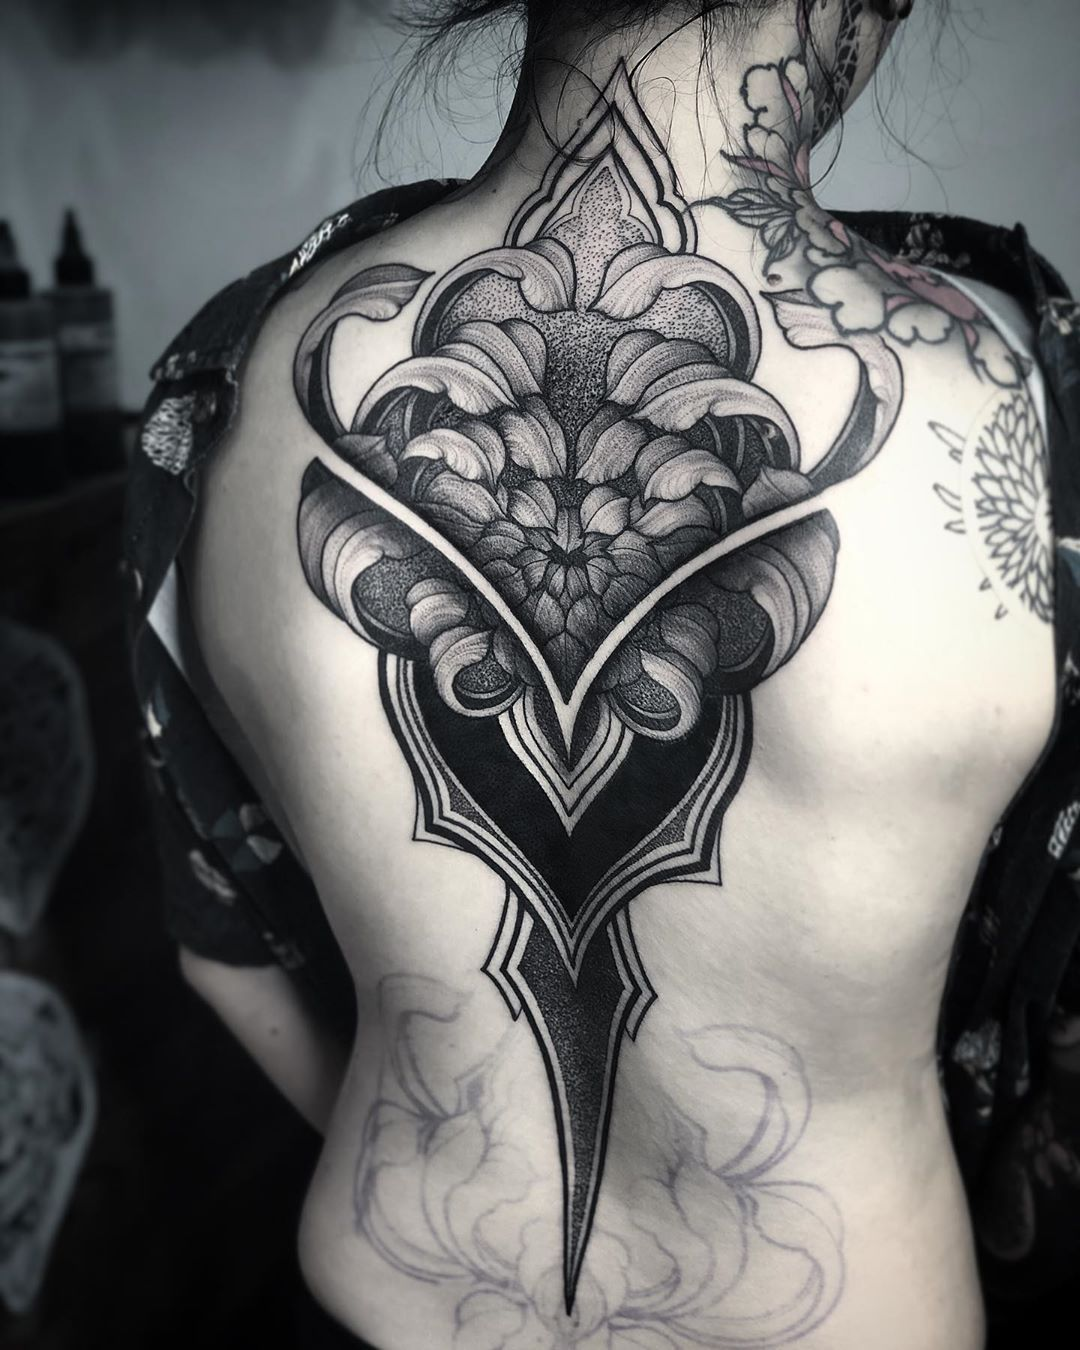 Done at sacred_ornaments in Bali, Indonesia Tattoos